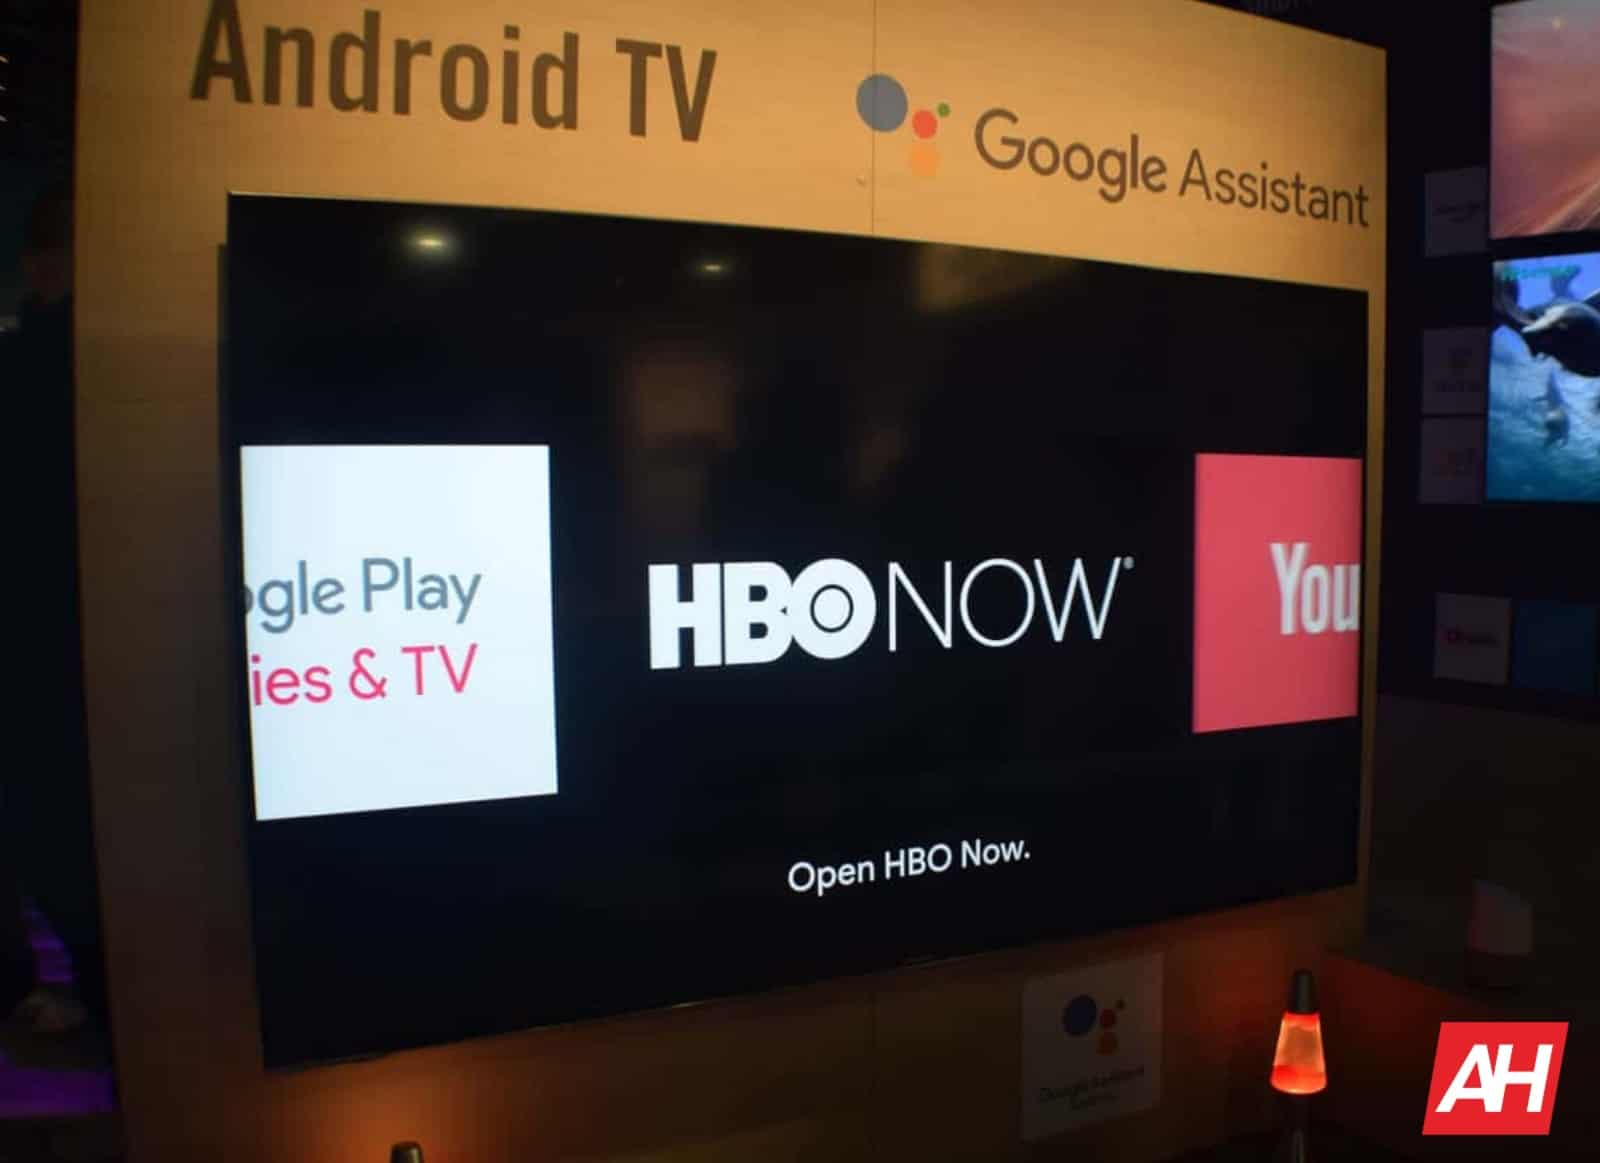 Android TV AH 01